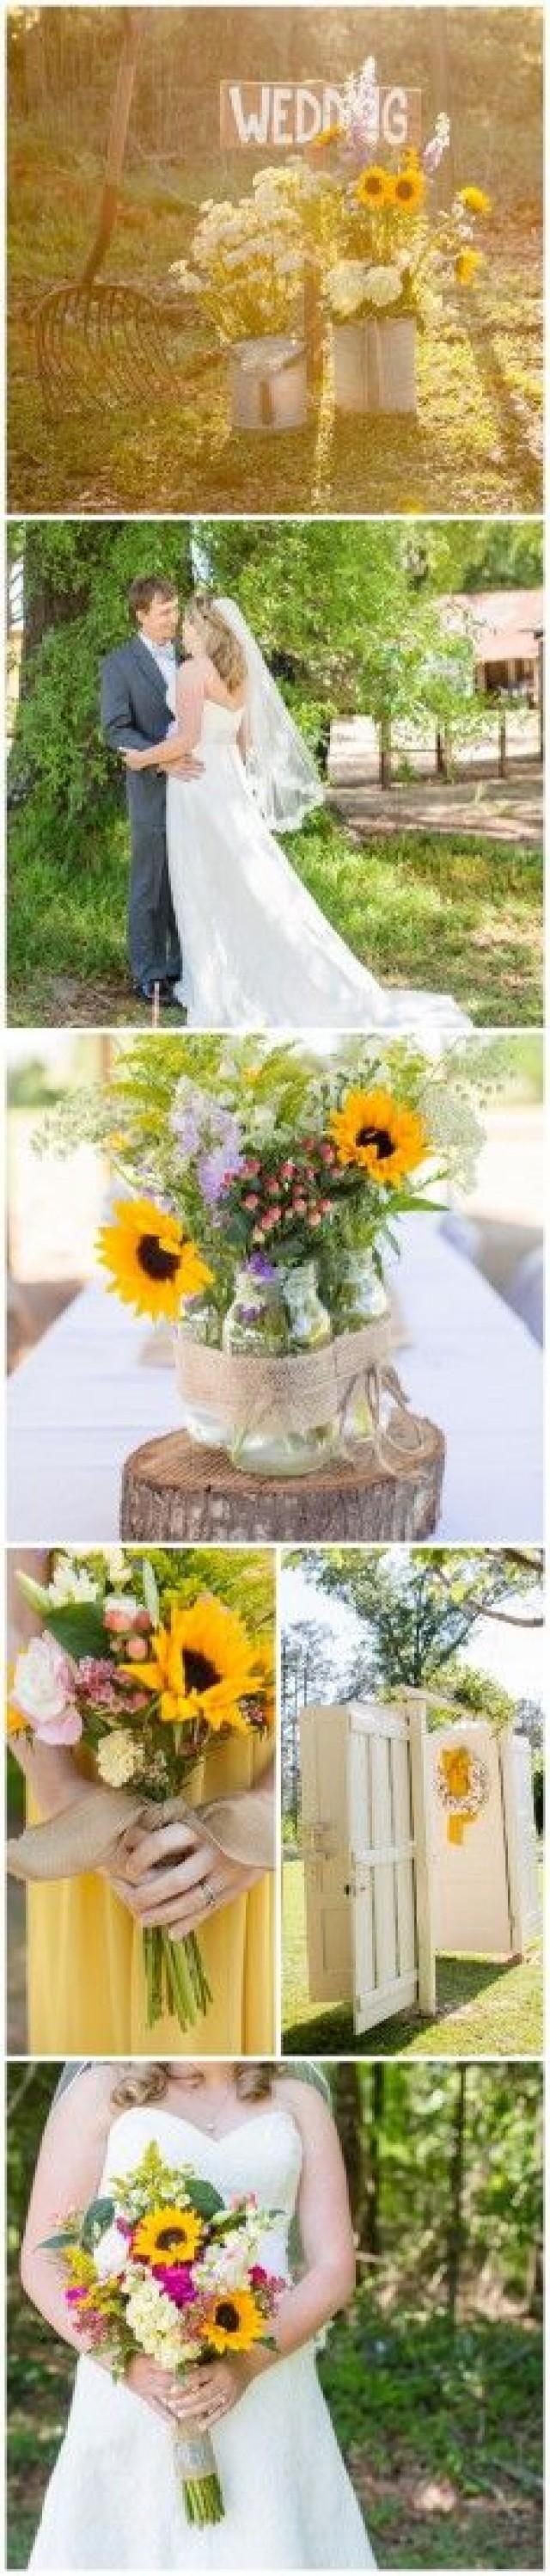 Thème De Mariage - Wedding On A Family Farm #2333451 - Weddbook